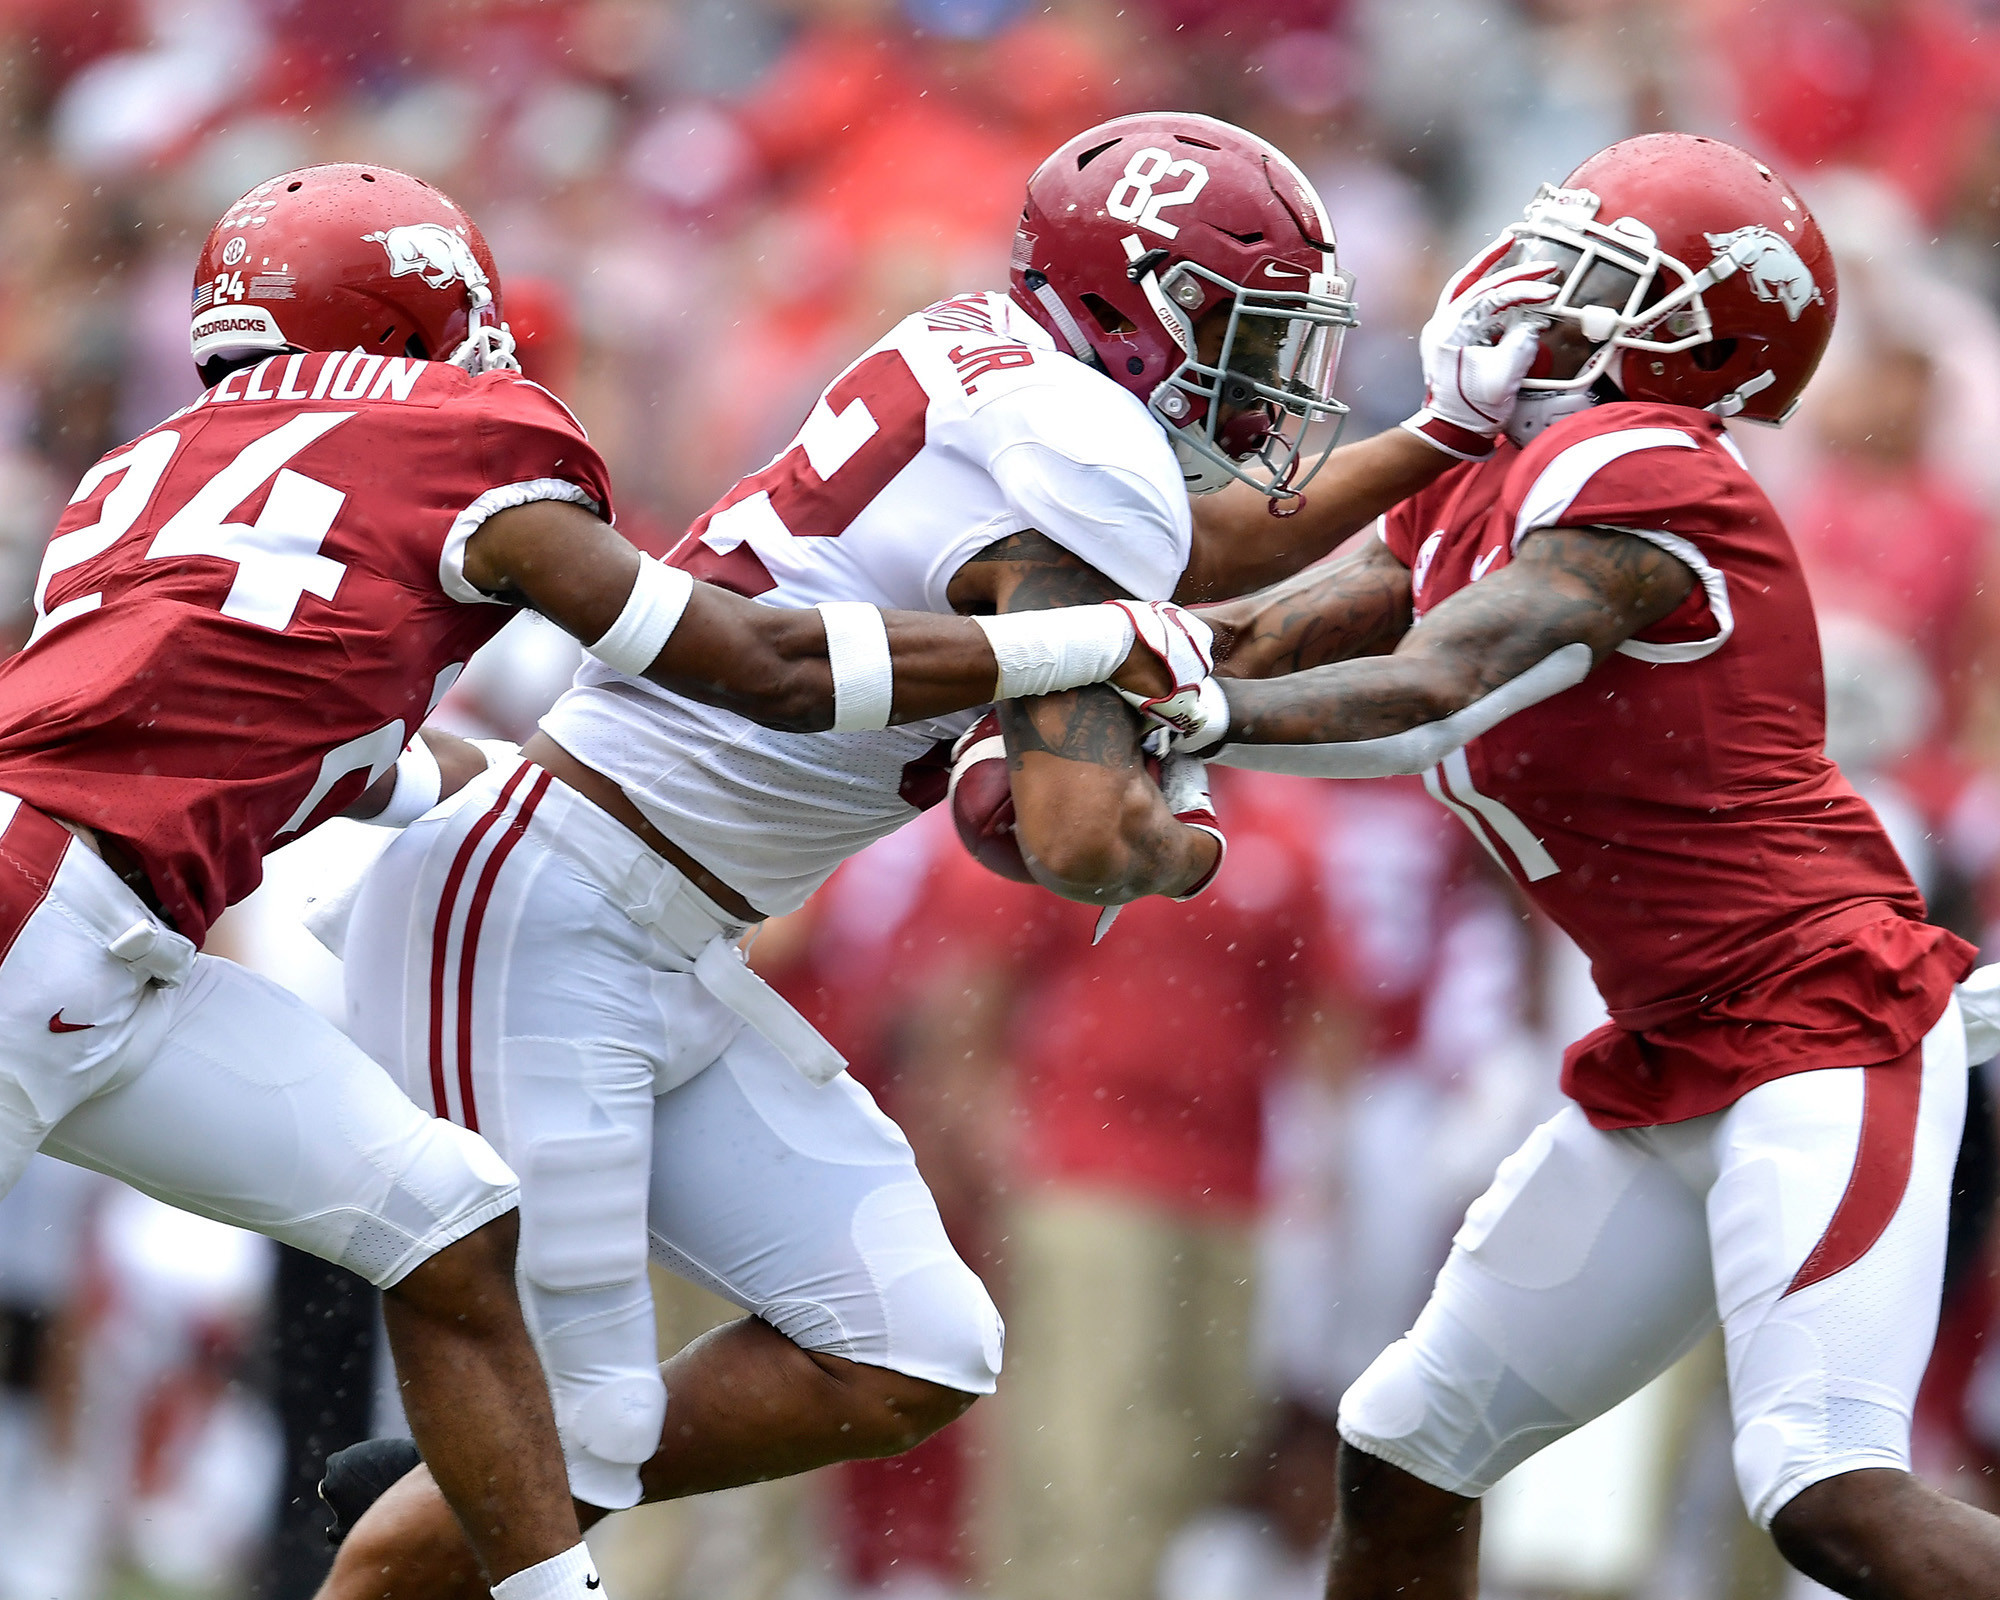 Alabama Crimson Tide tight end Irv Smith Jr. (82) adds yards after the catch in the first half of the NCAA football game against the Arkansas Razorbacks at Razorback Stadium on Oct. 6, 2018, in Fayetteville, Ark. Alabama defeated Arkansas 65-31. (Photo by Lee Walls)